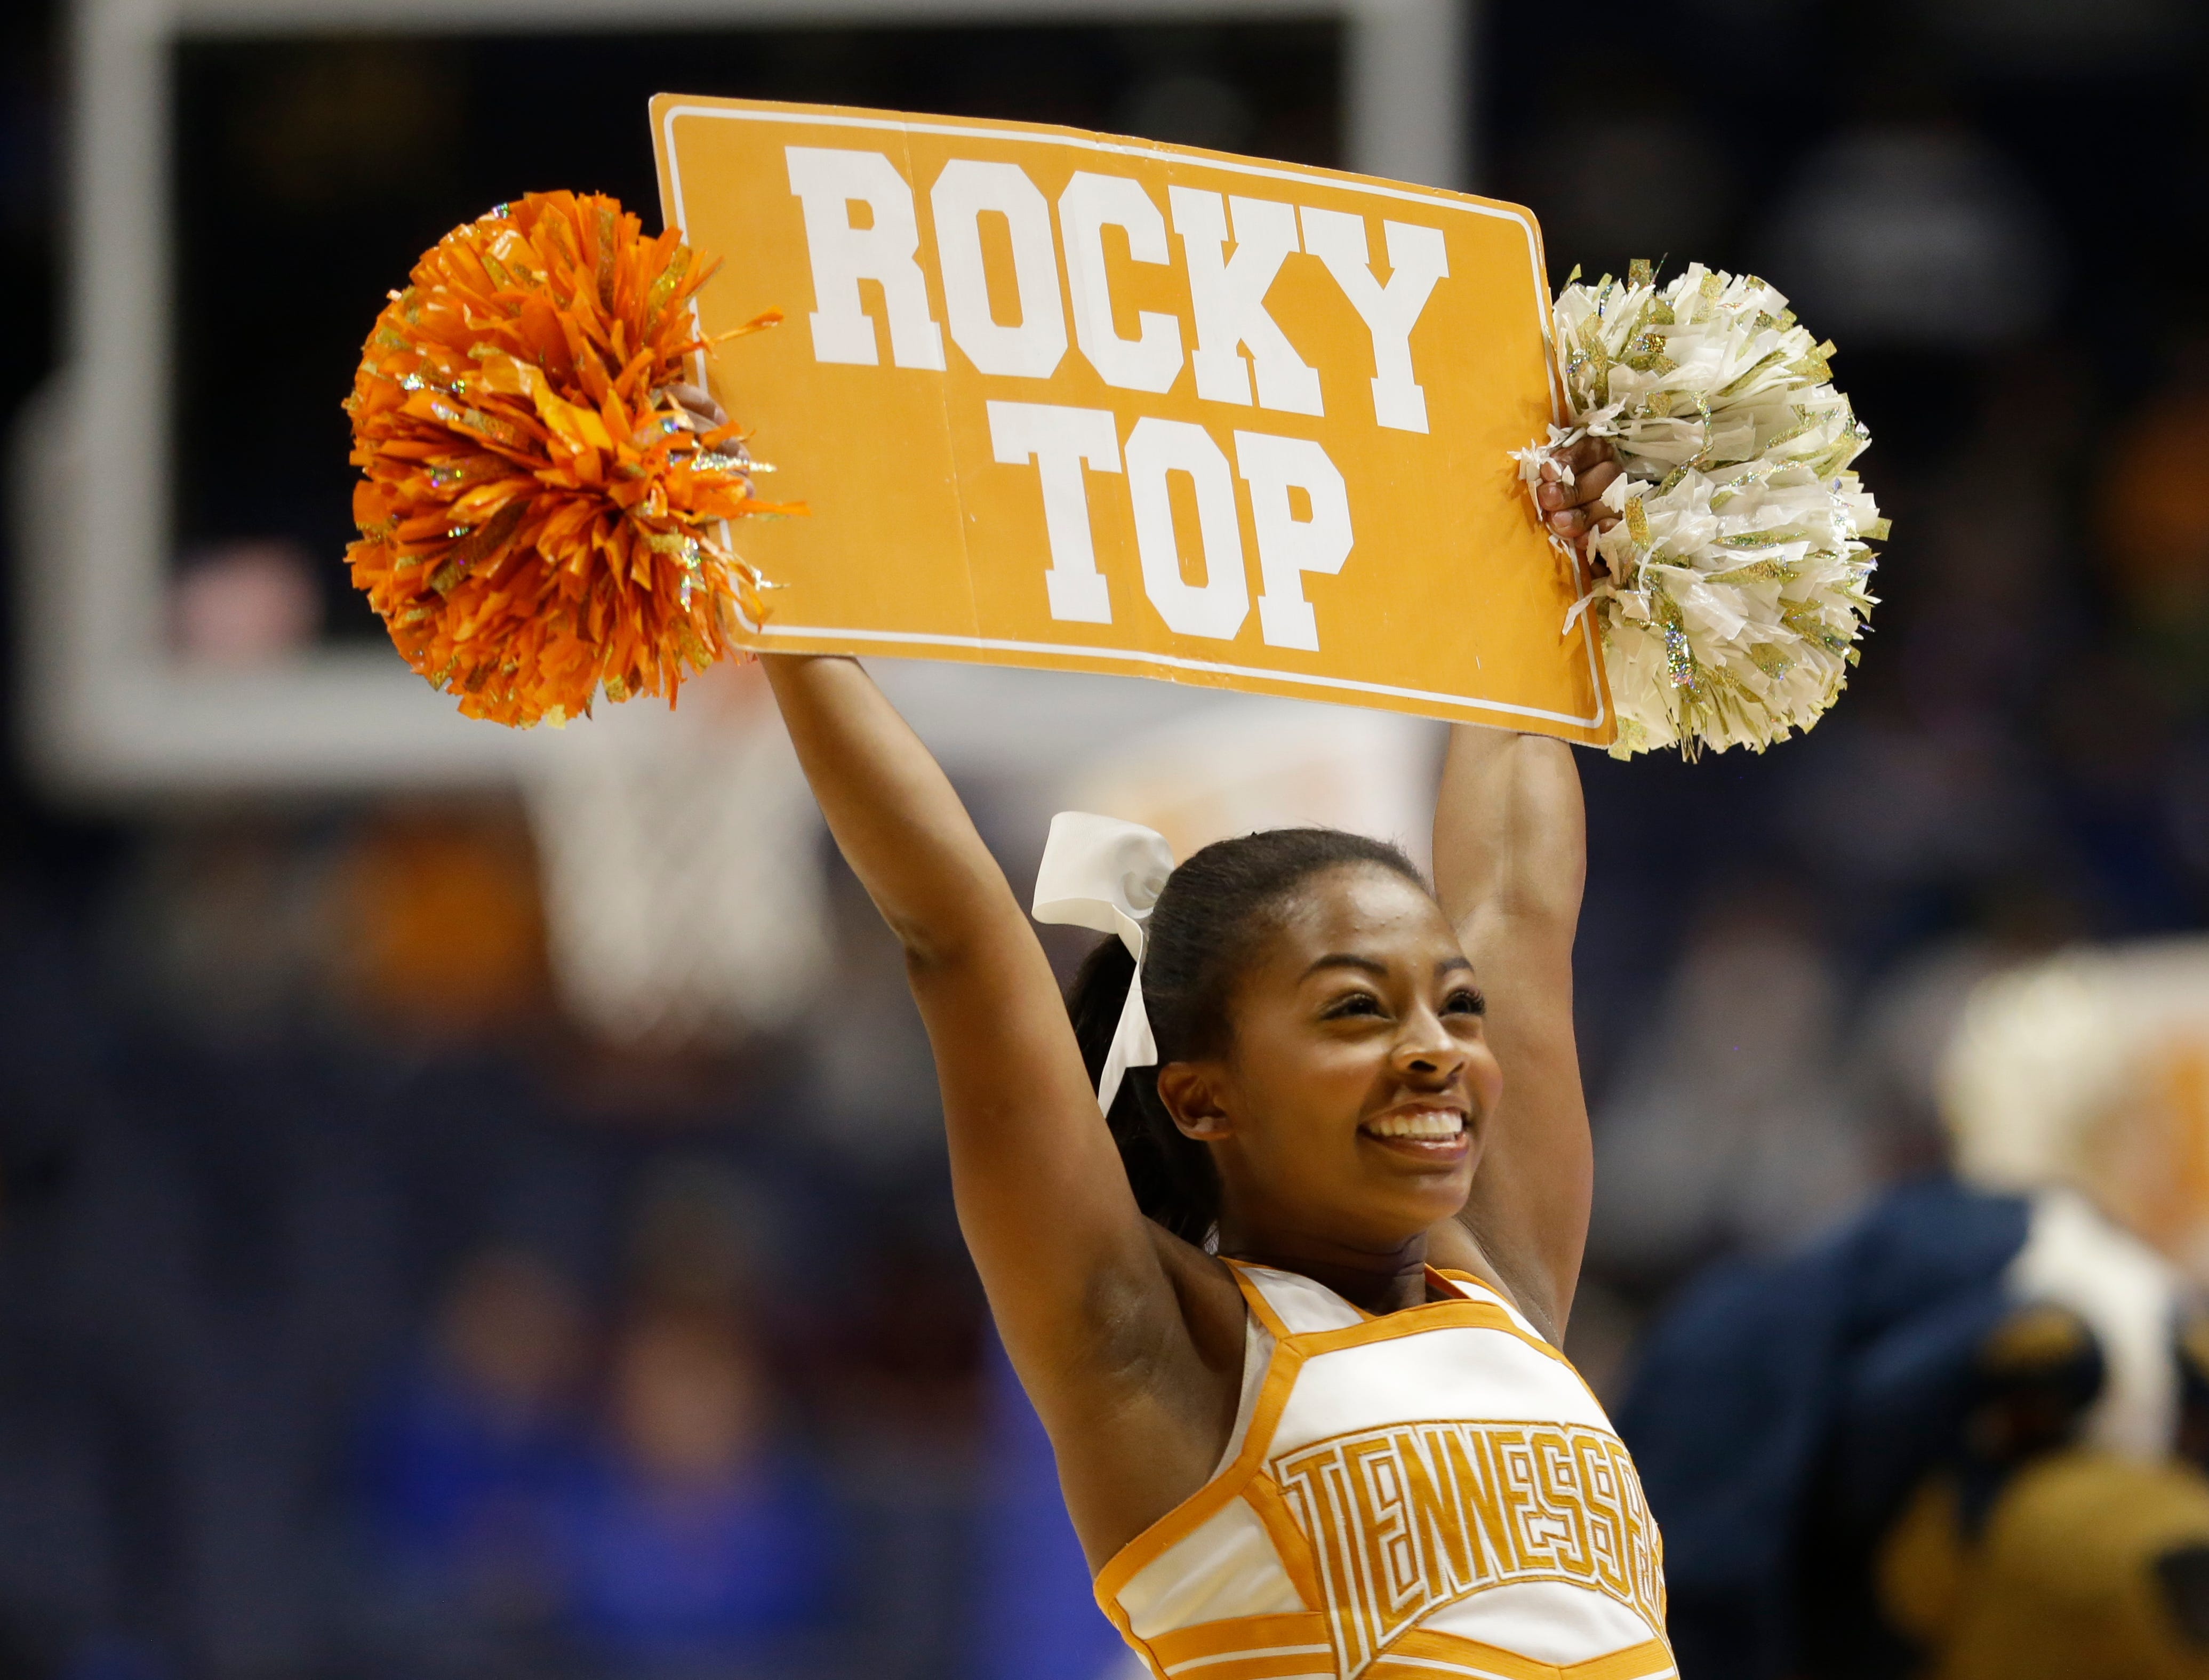 A Tennessee cheerleader performs during the first half of an NCAA college basketball game against Vanderbilt in the Southeastern Conference tournament in Nashville, Tenn., Thursday, March 10, 2016. (AP Photo/Mark Humphrey)